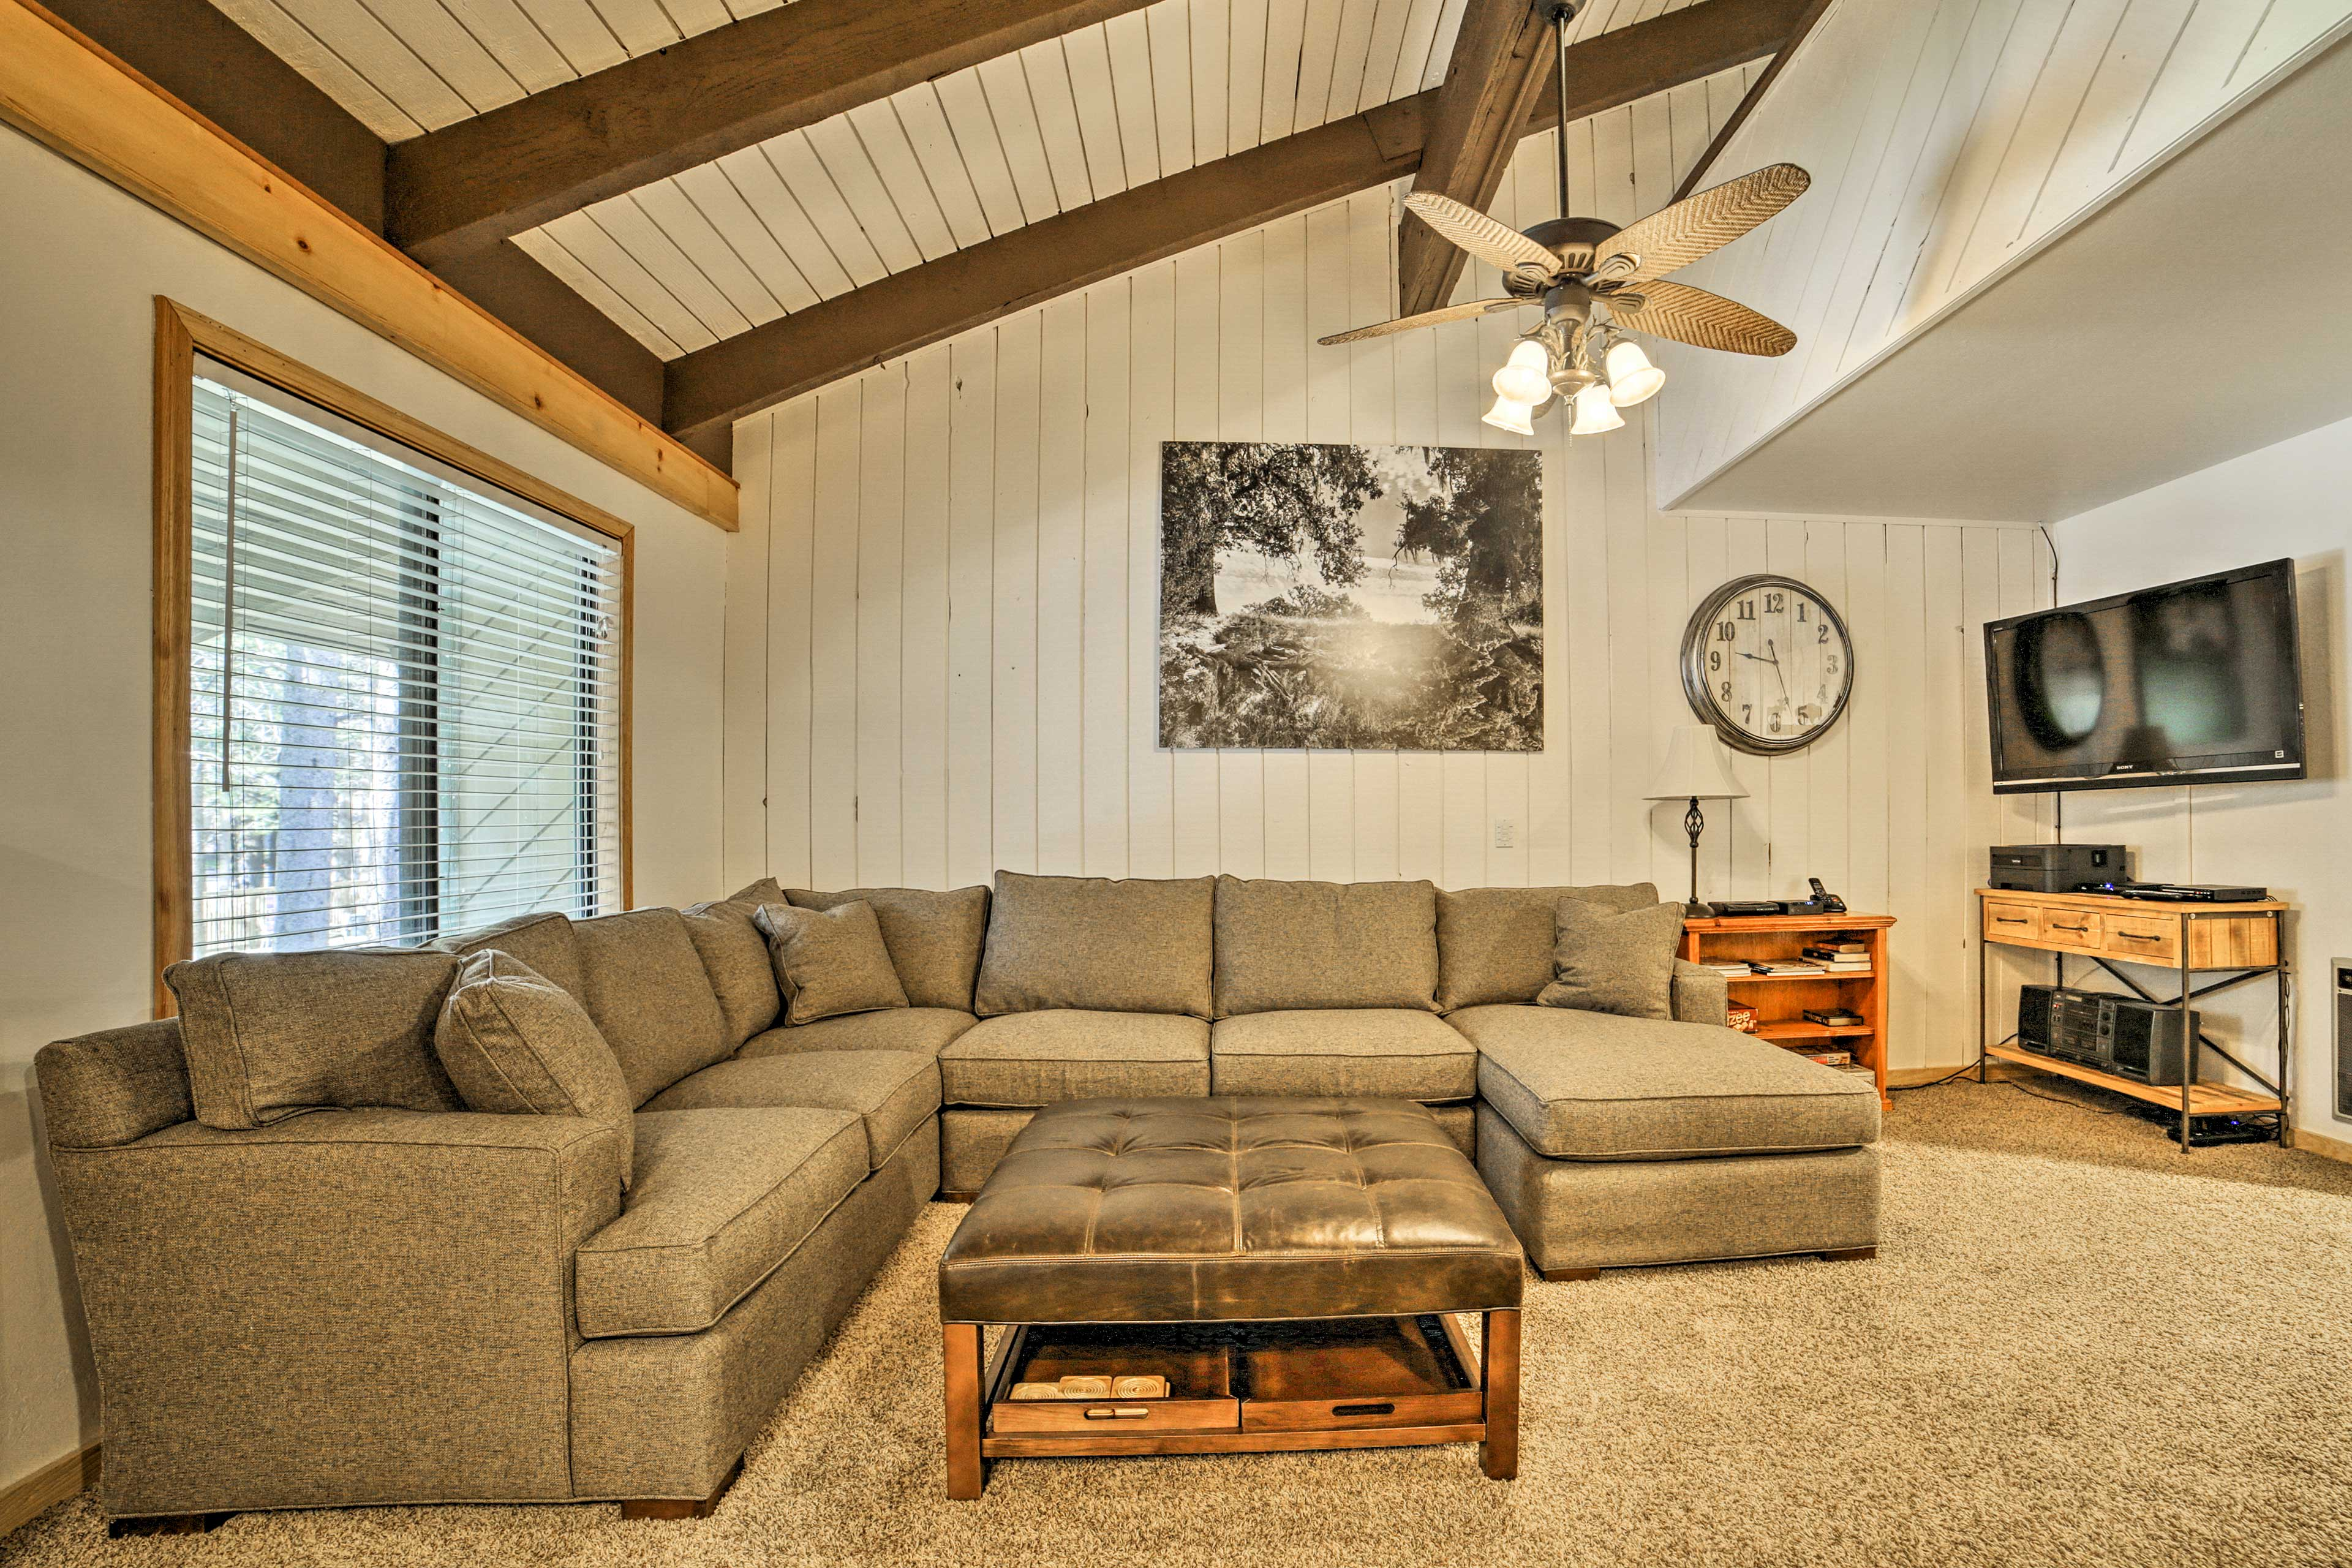 The vaulted ceilings add to the spaciousness.